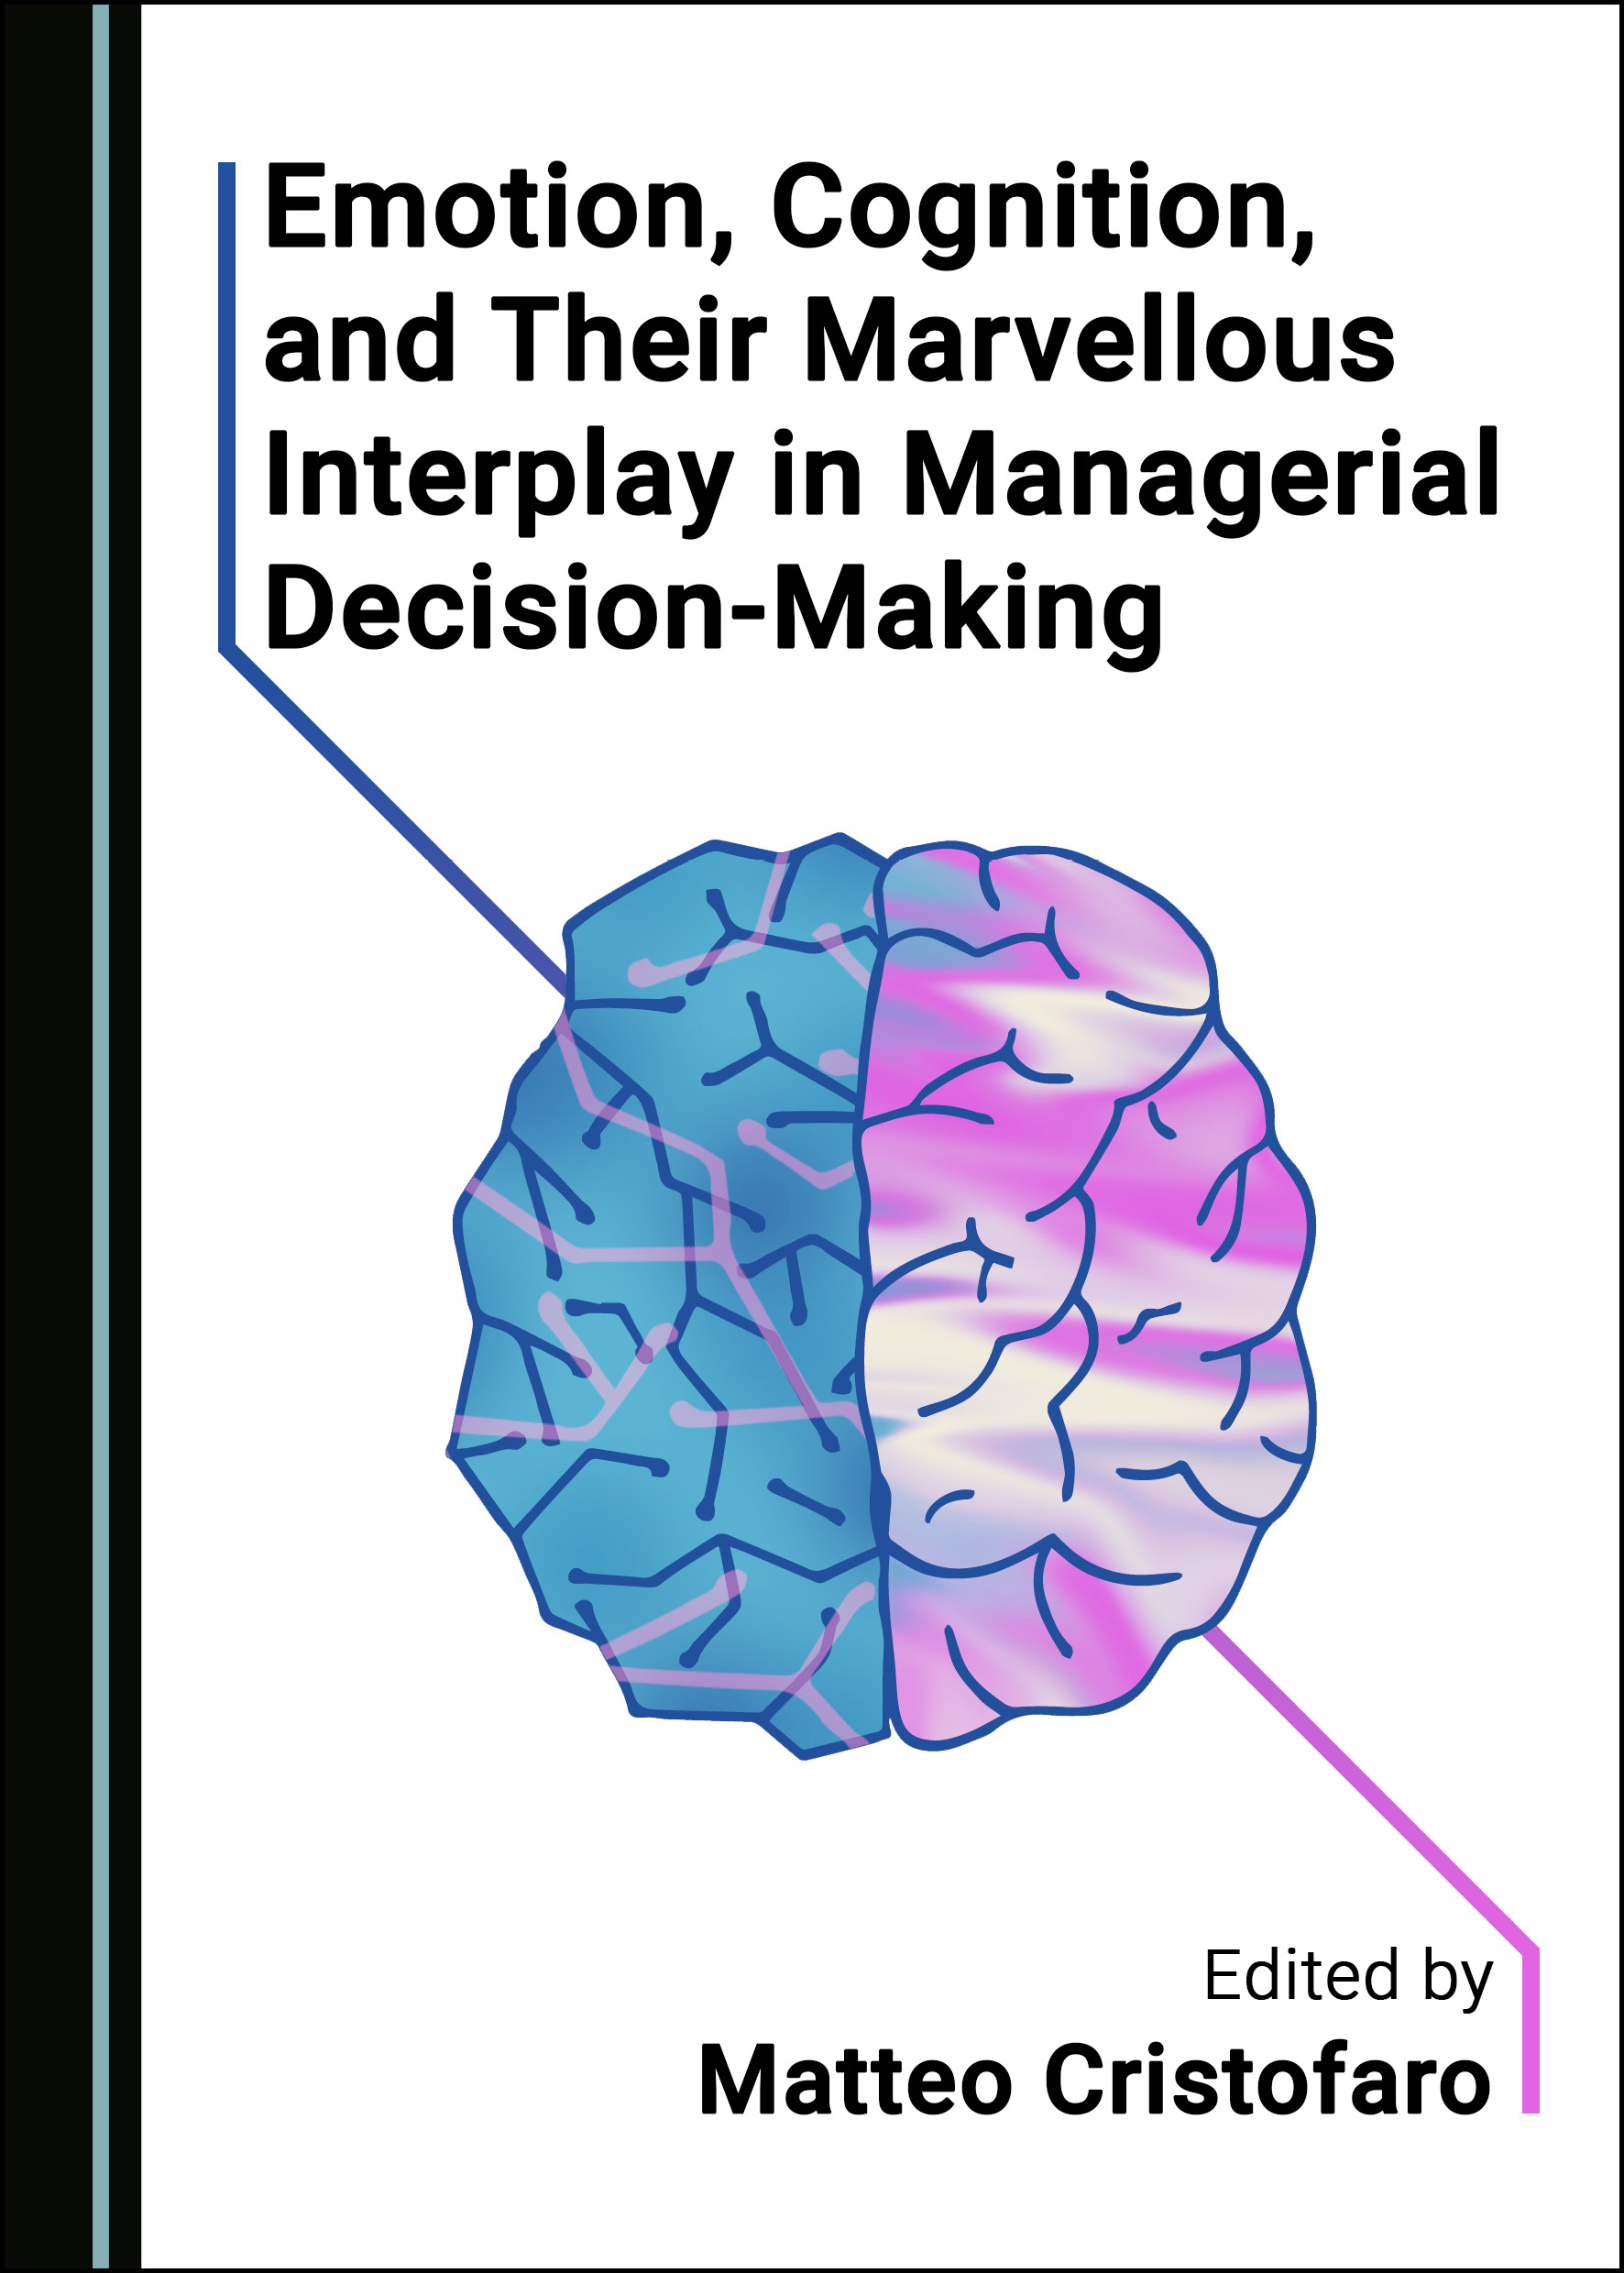 Emotion, Cognition, and Their Marvellous Interplay in Managerial Decision-Making